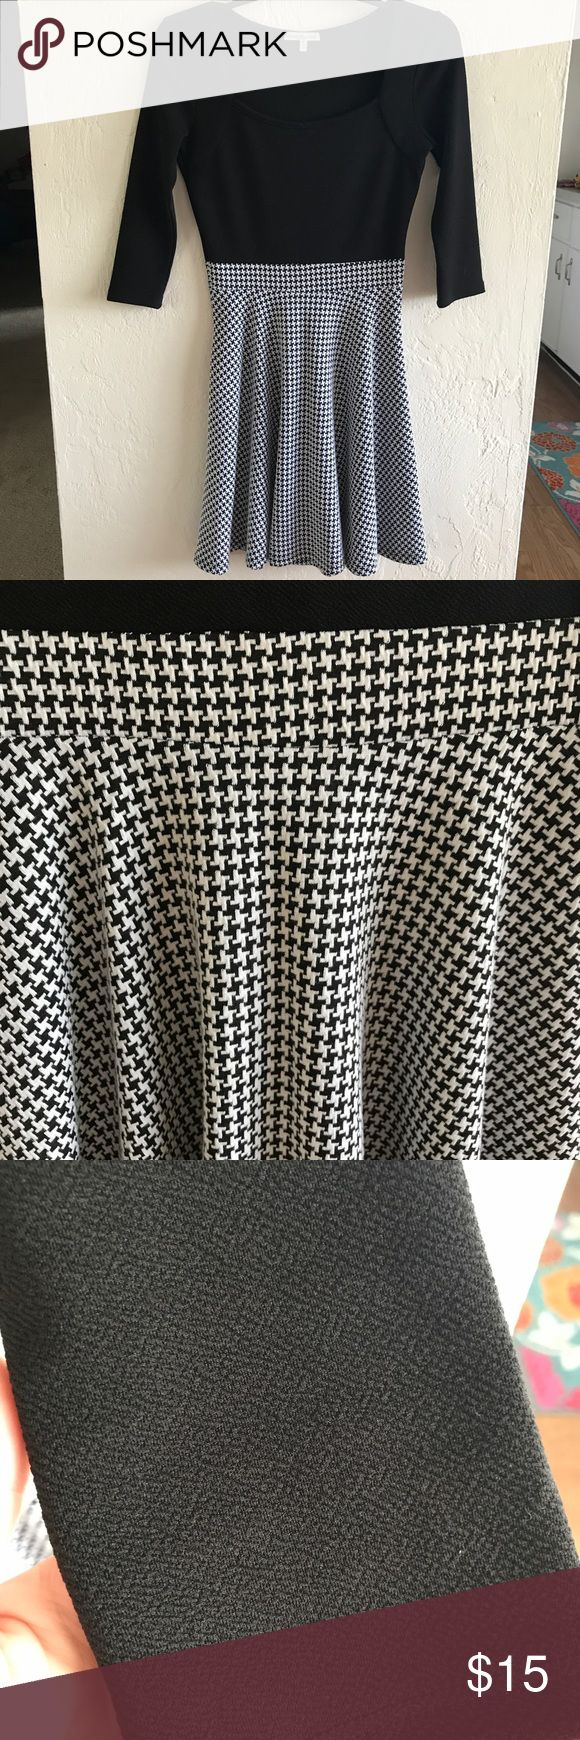 Black and White Skater Dress EUC skater dress. Worn once for a special occasion. Black on top with black and white design on bottom. 3/4 length sleeves. Cute! Charlotte Russe Dresses